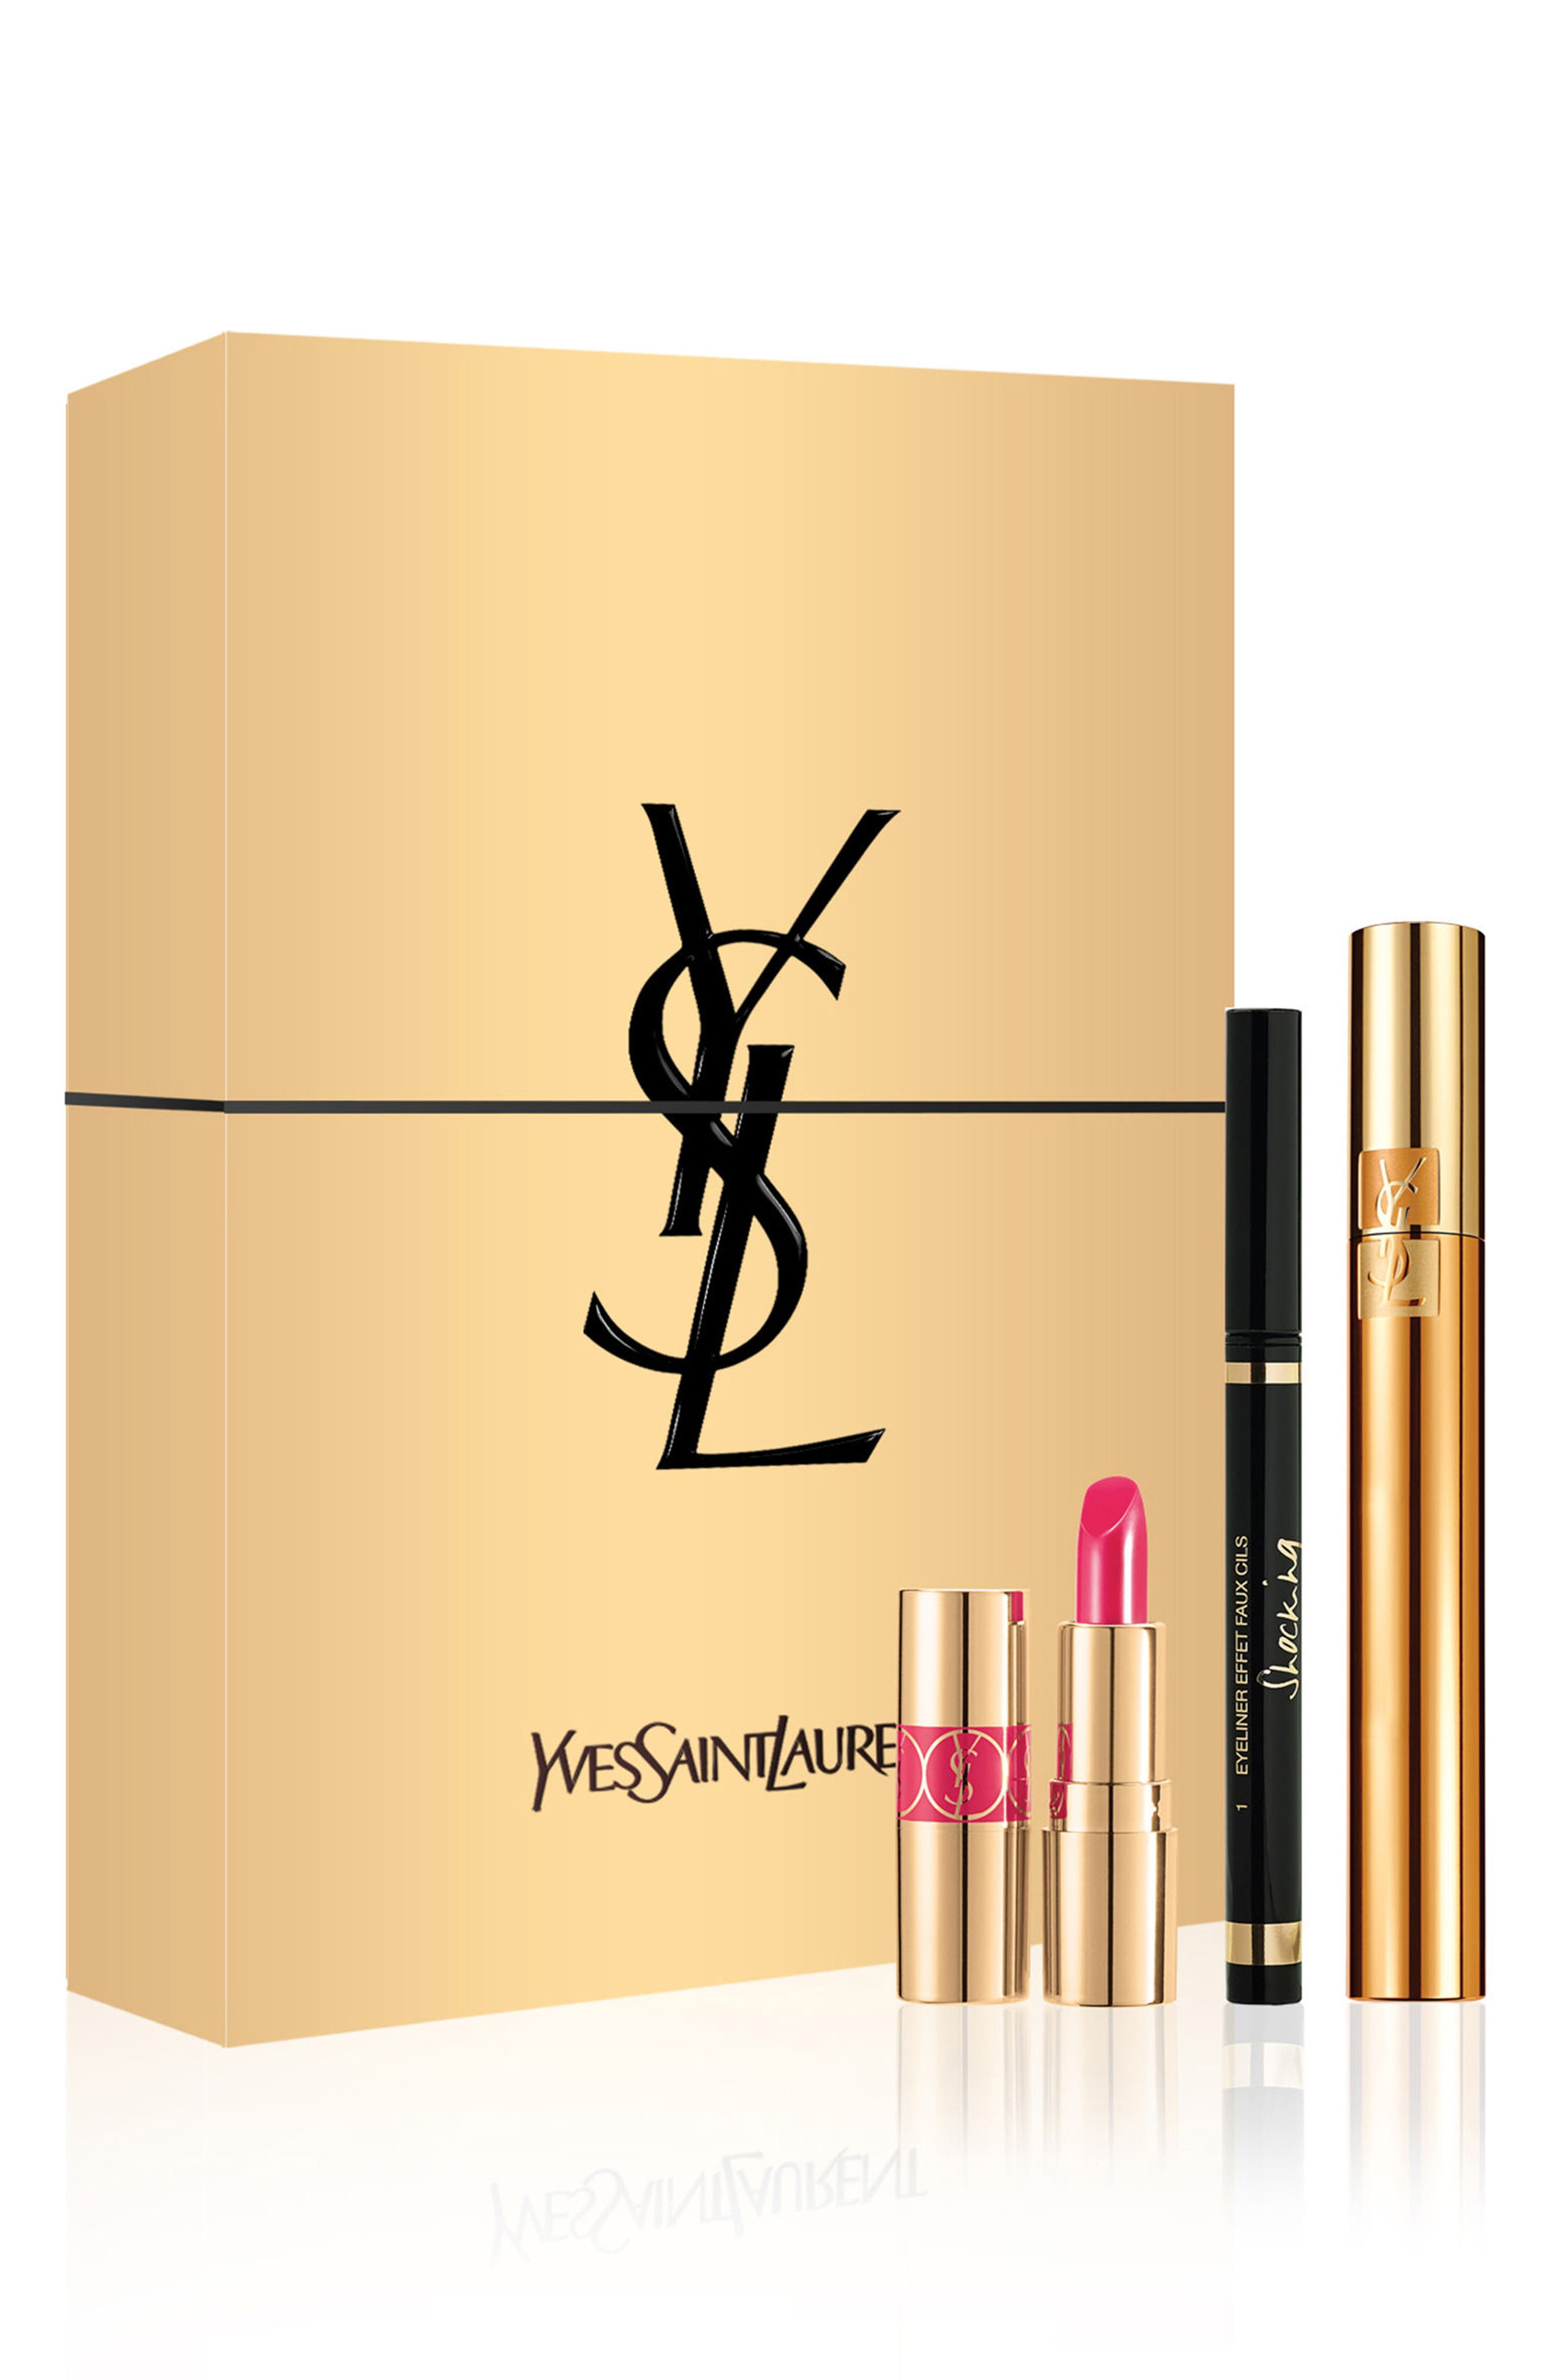 Main Image - Yves Saint Laurent Extravagant Eyes Faux Cils Gift Set (Limited Edition) ($80 Value)